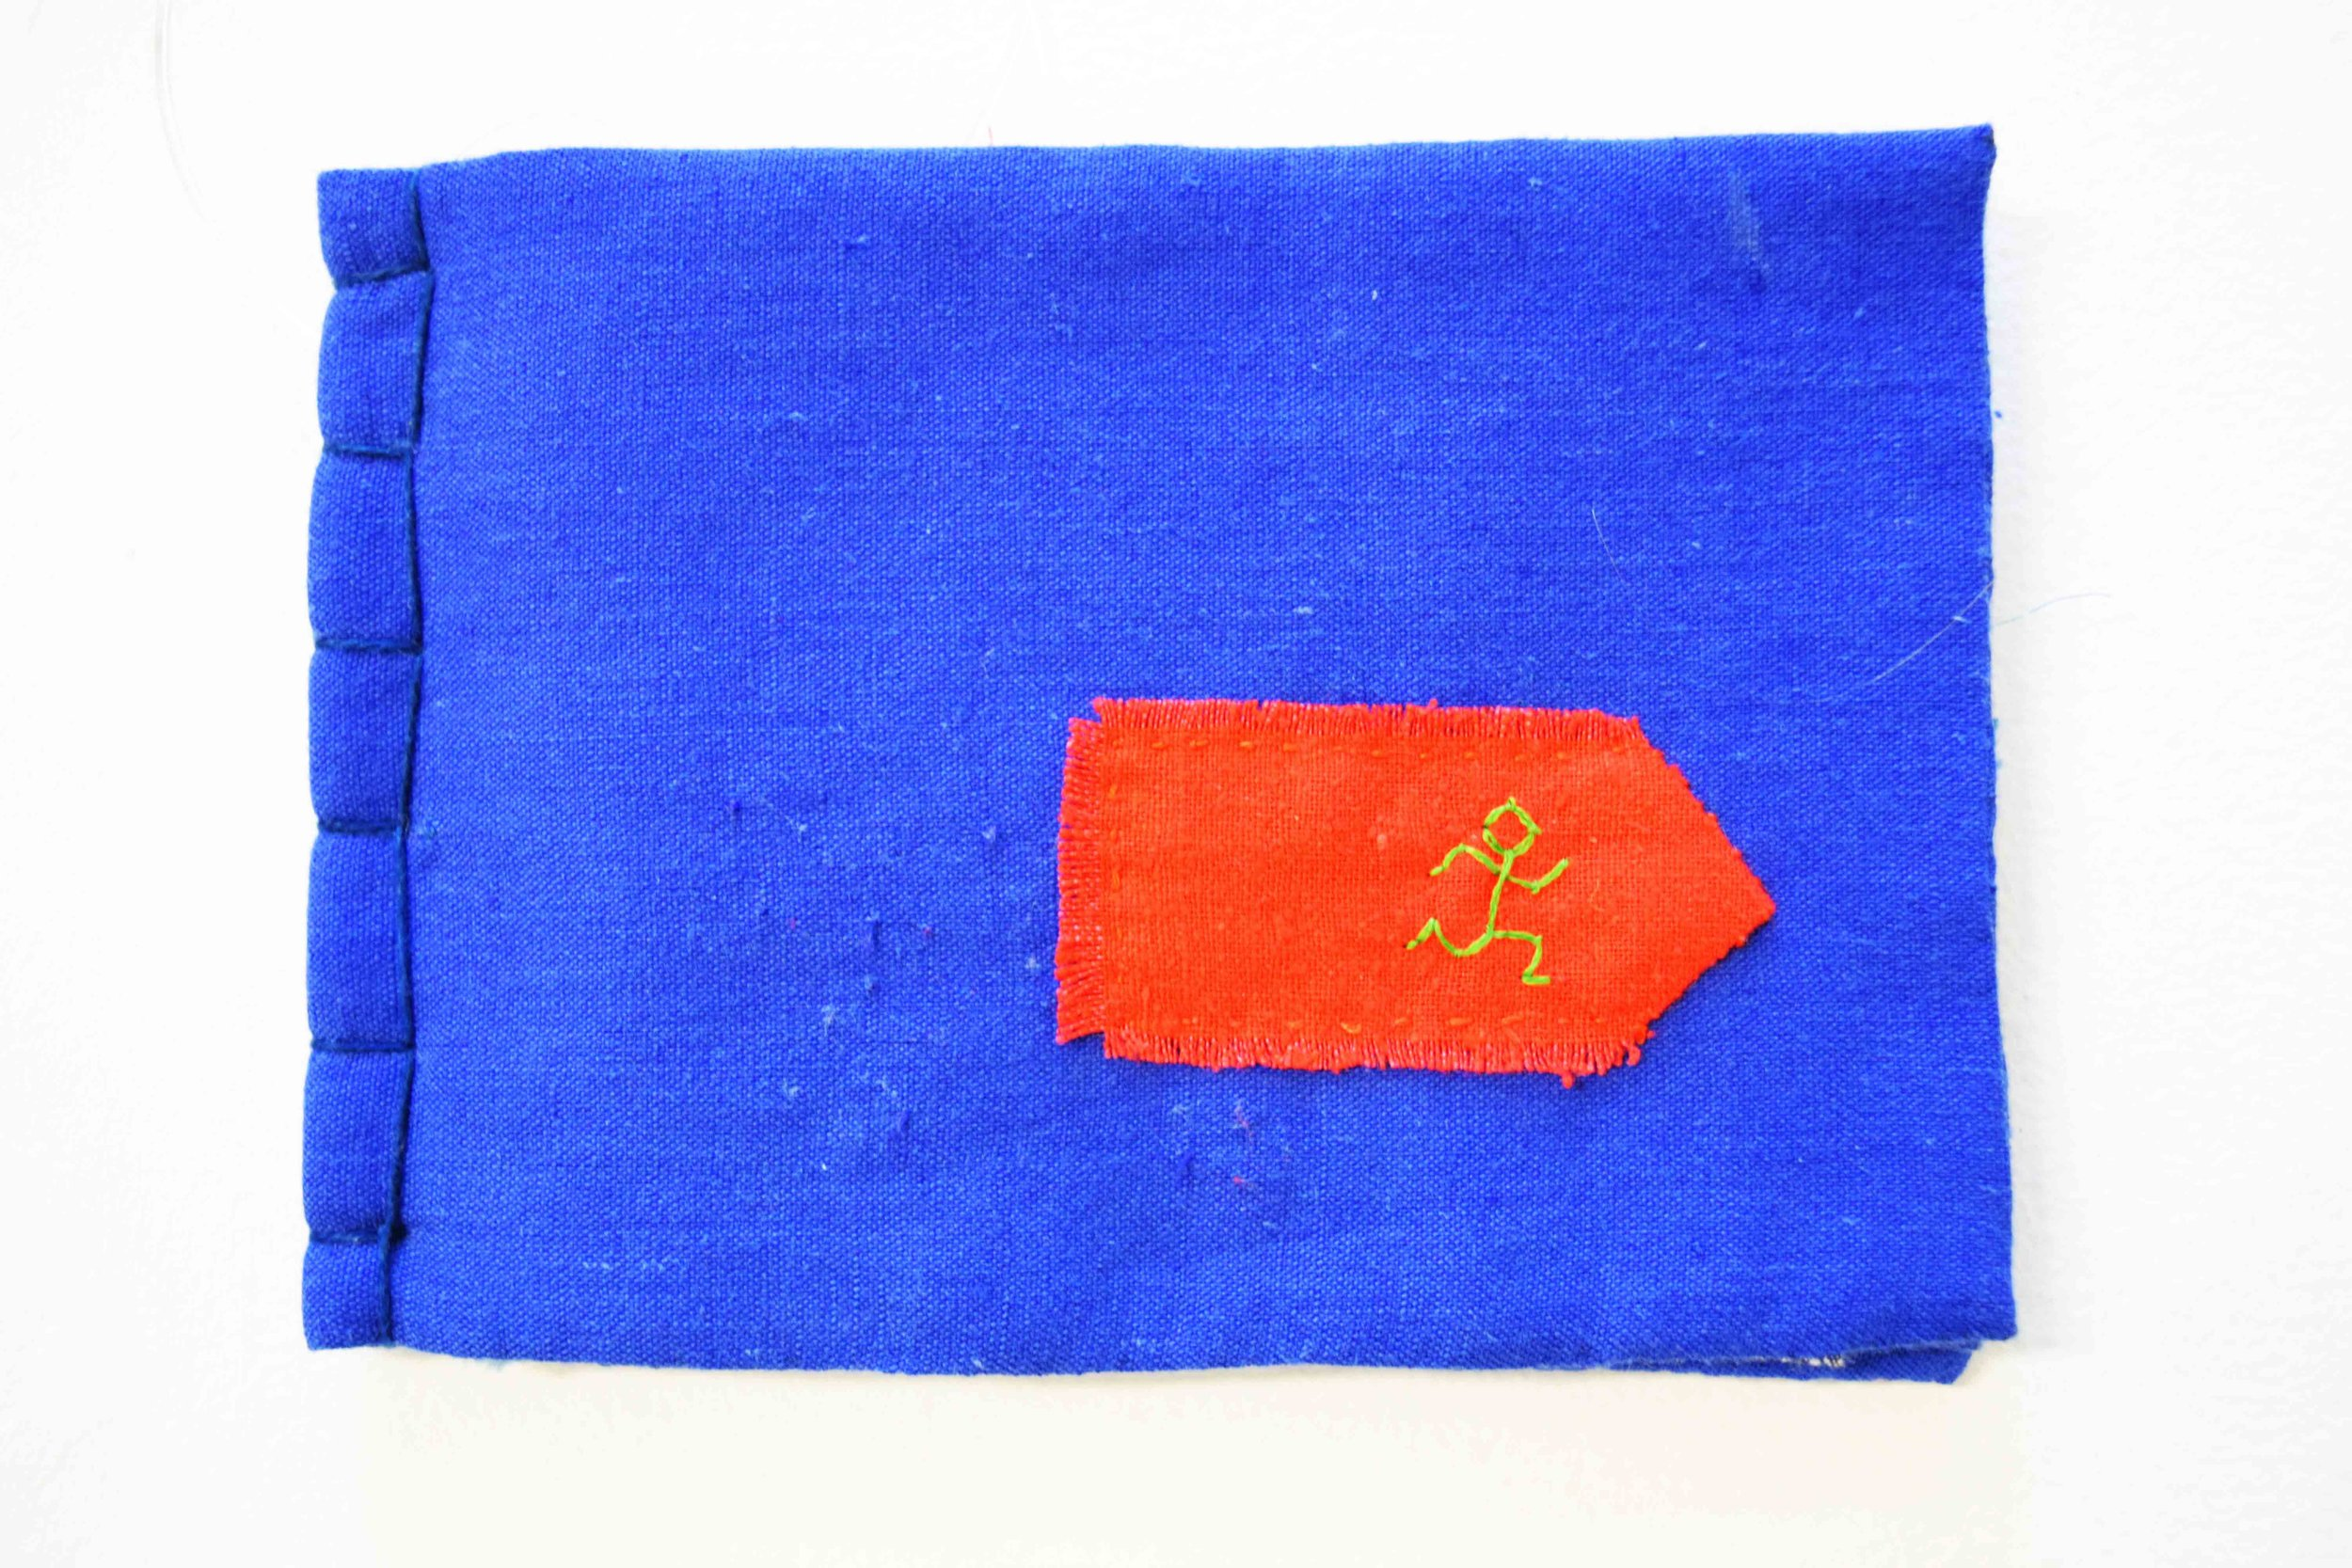 39. Anne Williams,  Spellcheck,  hand stitched cotton and silk, applique, book binding, 12 x 16.5 cm $135